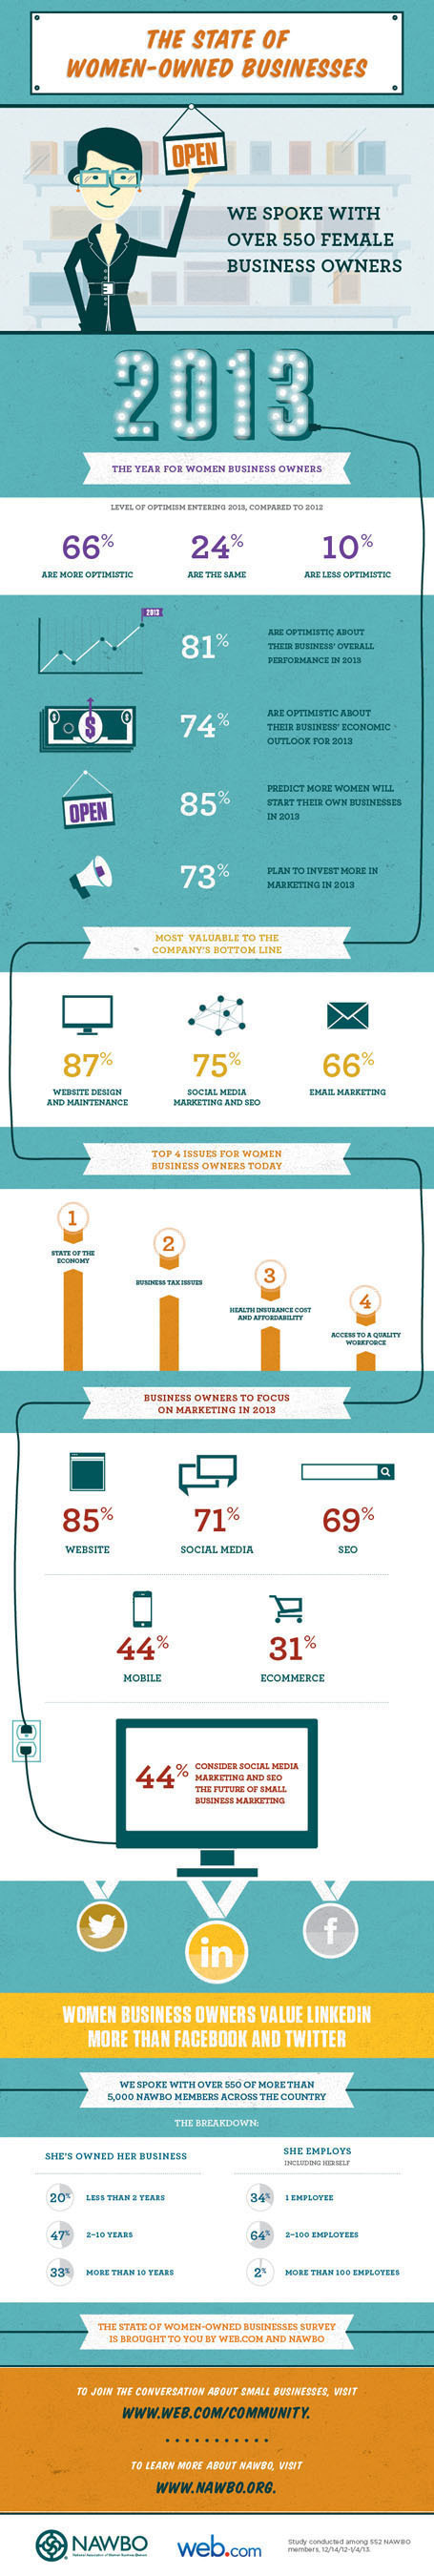 State of Women-Owned Businesses Infographic. (PRNewsFoto/Web.com, National Association of Women Business ...